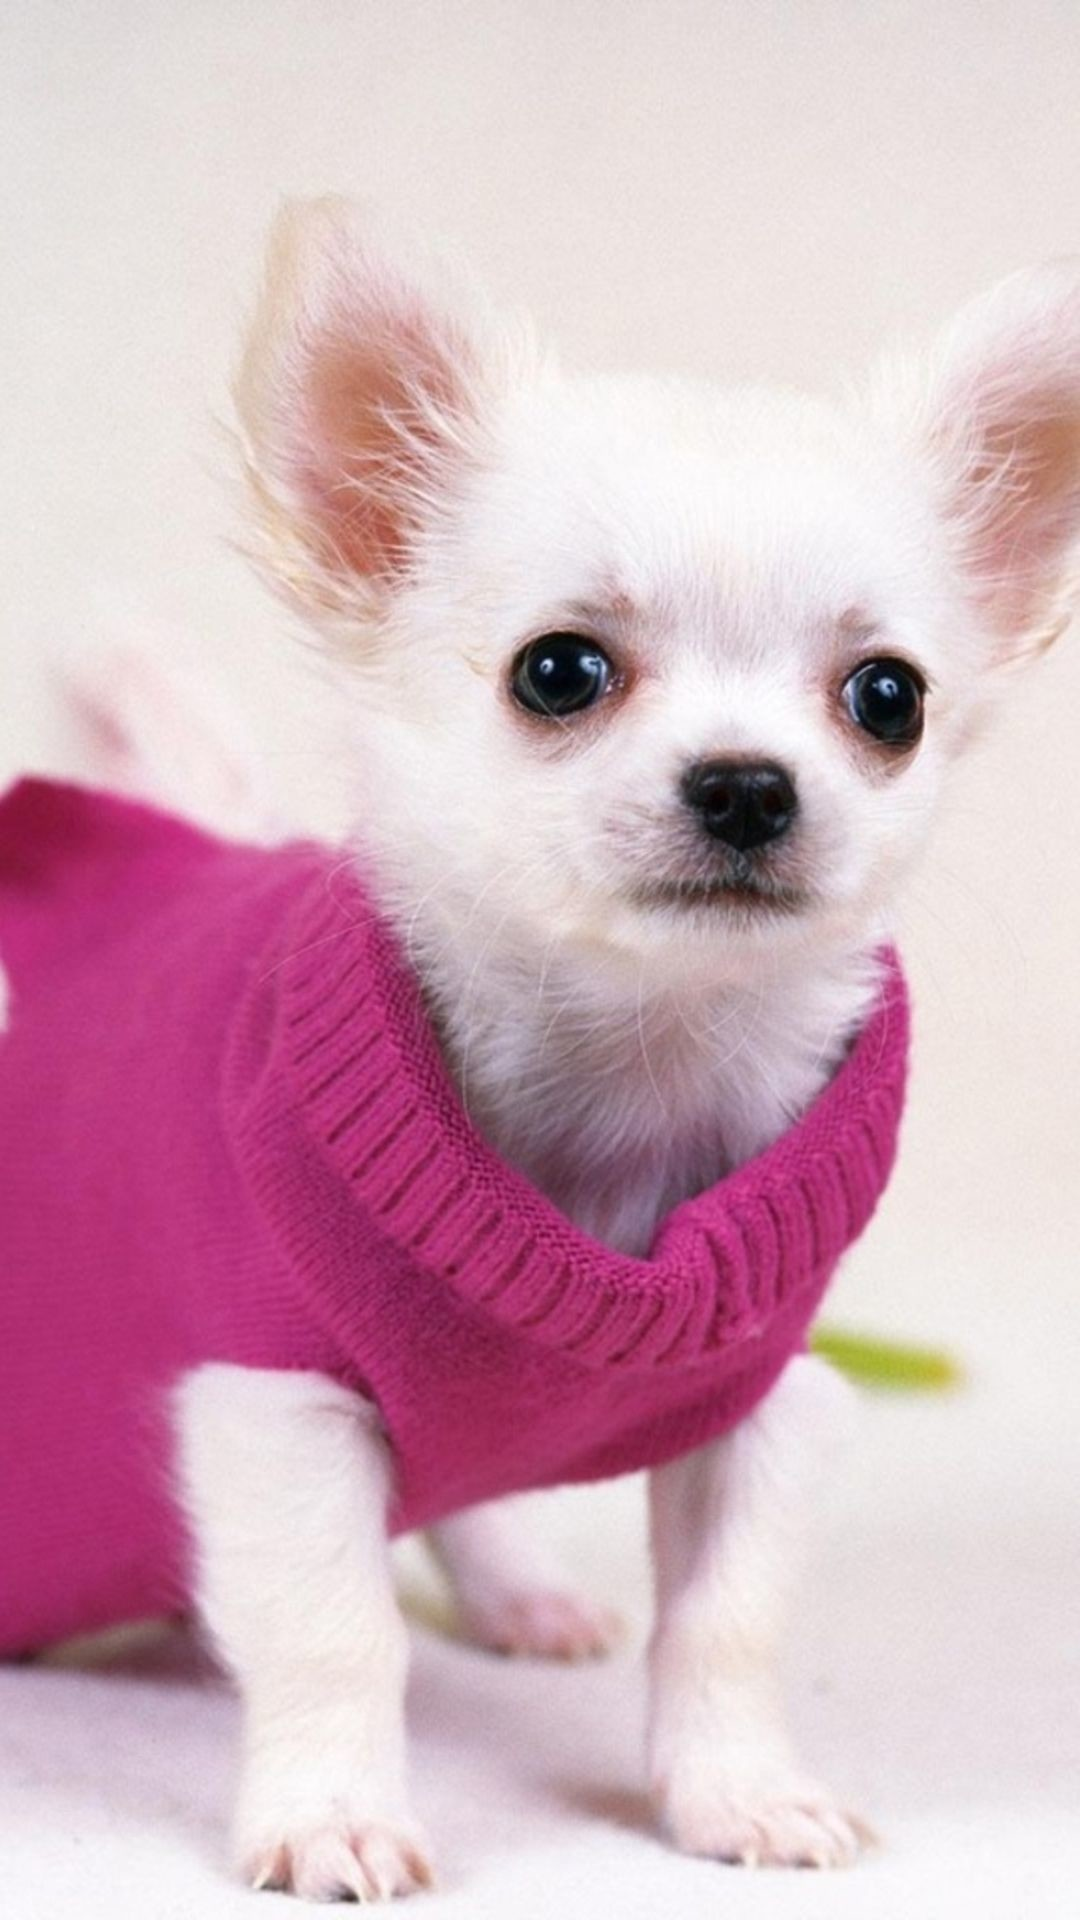 Cute Pretty Dog In Red Sweater iPhone 6 Wallpaper Download .